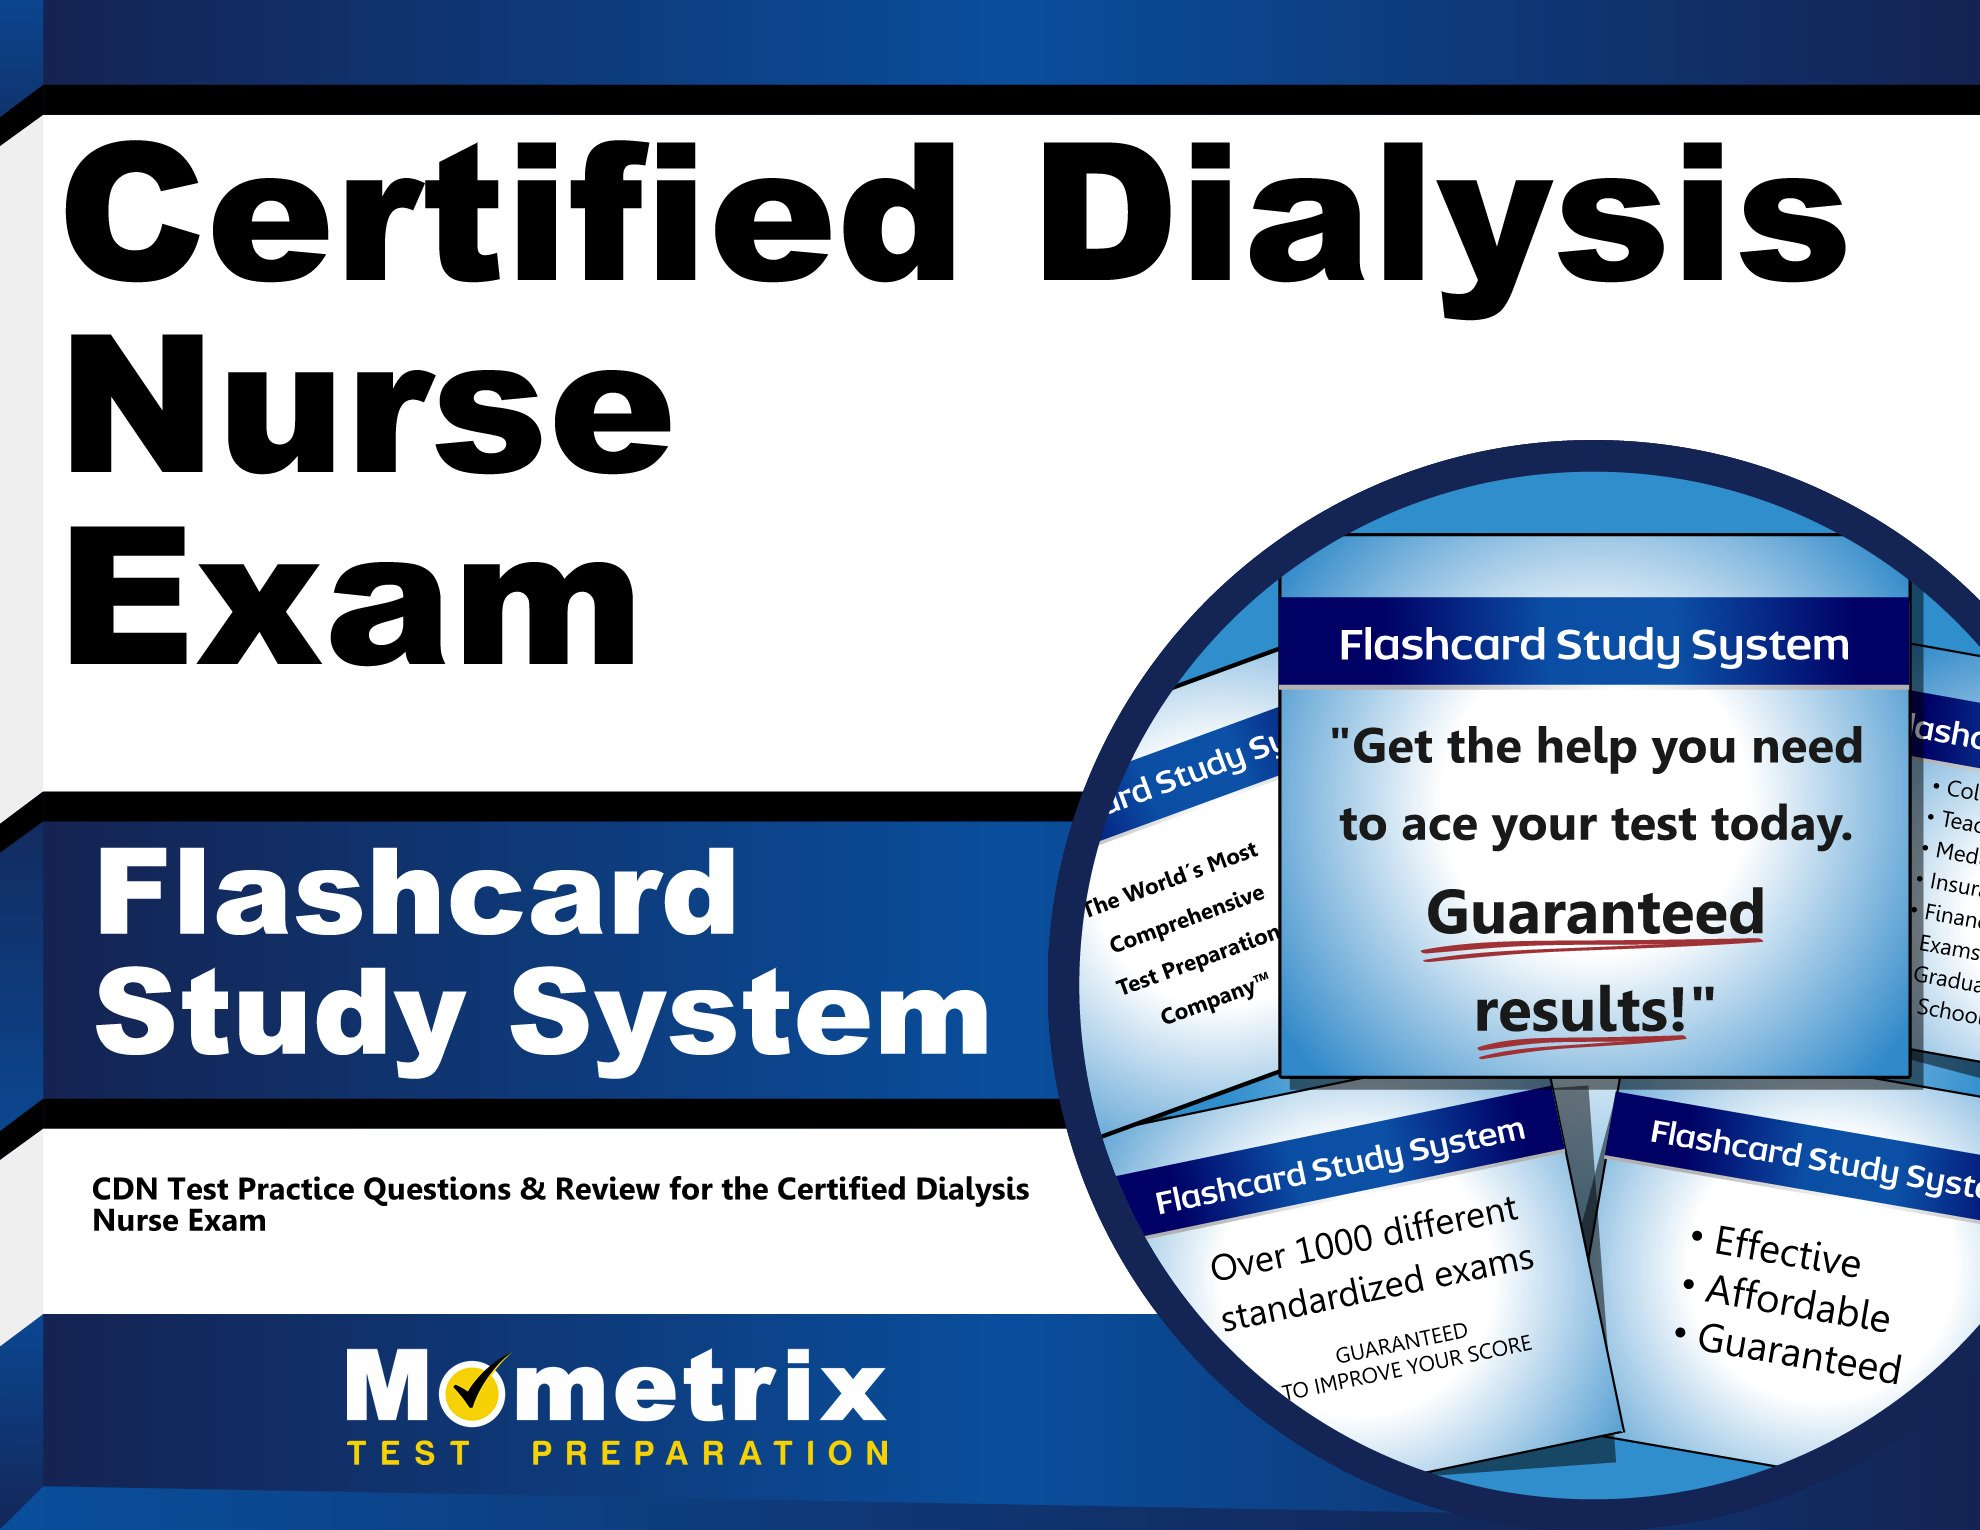 Download Certified Dialysis Nurse Exam Flashcard Study System: CDN Test Practice Questions & Review for the Certified Dialysis Nurse Exam (Cards) pdf